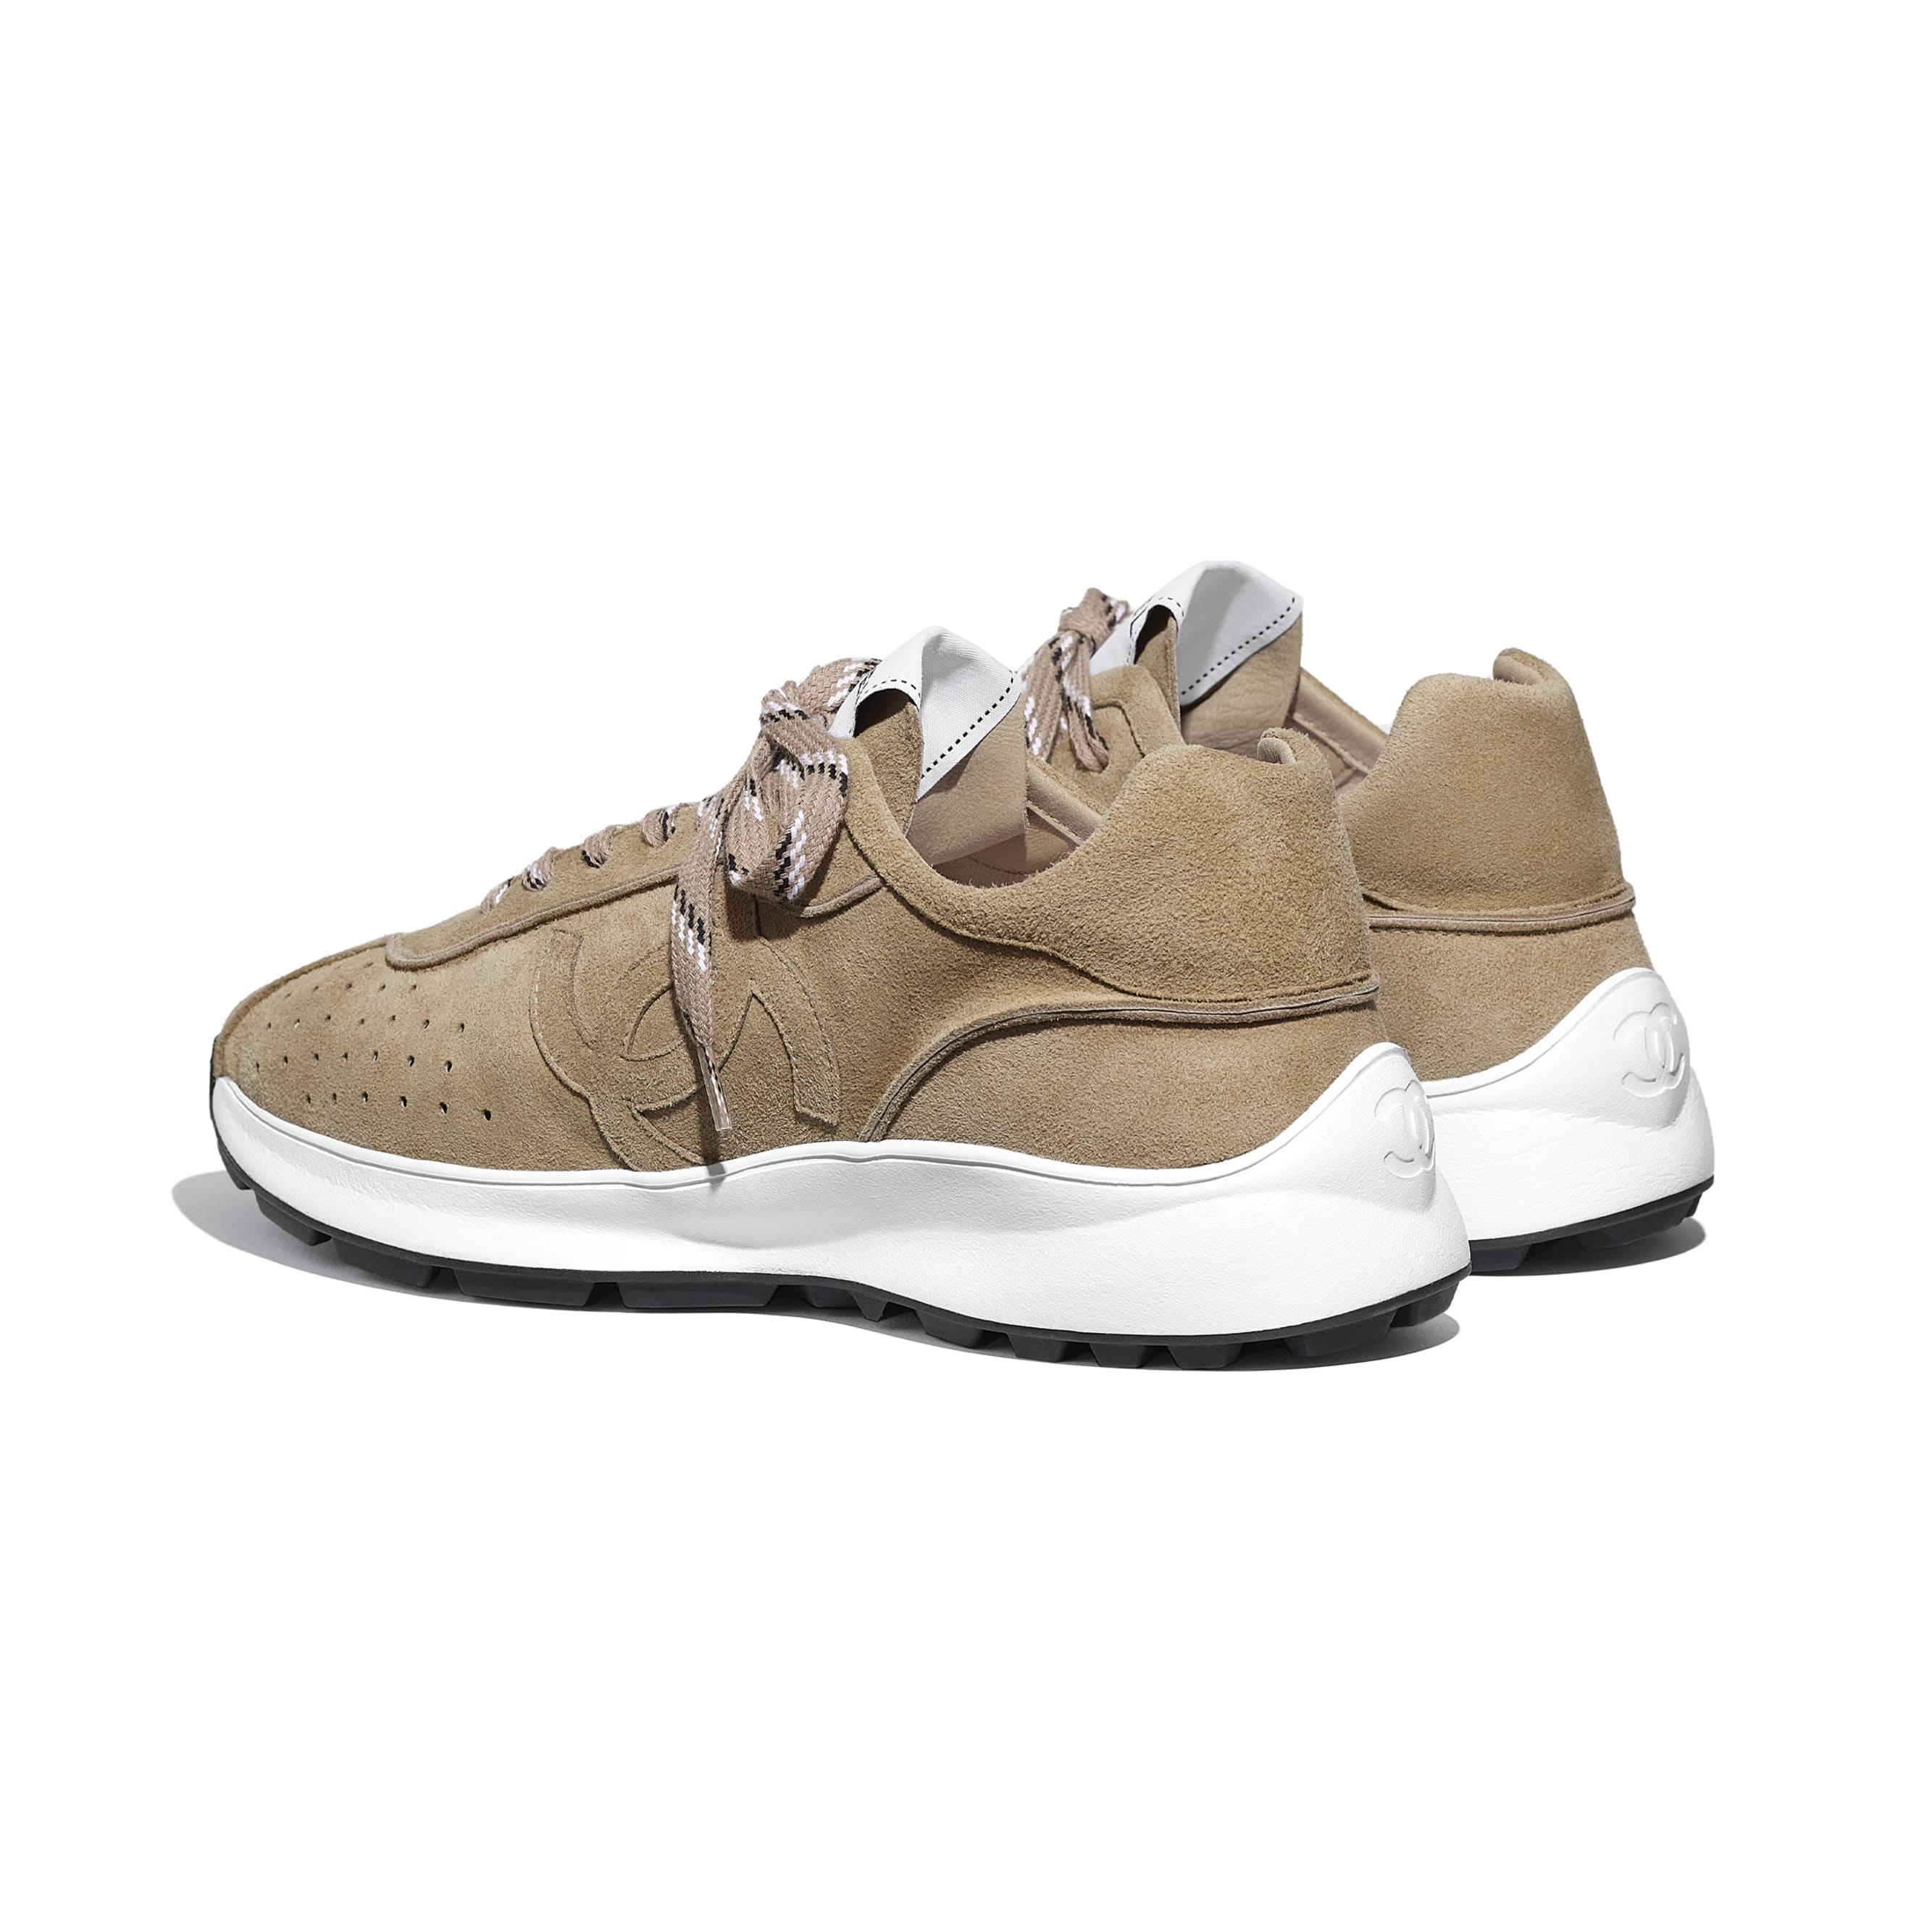 Trainers - Dark Beige - Suede Goatskin - CHANEL - Other view - see standard sized version